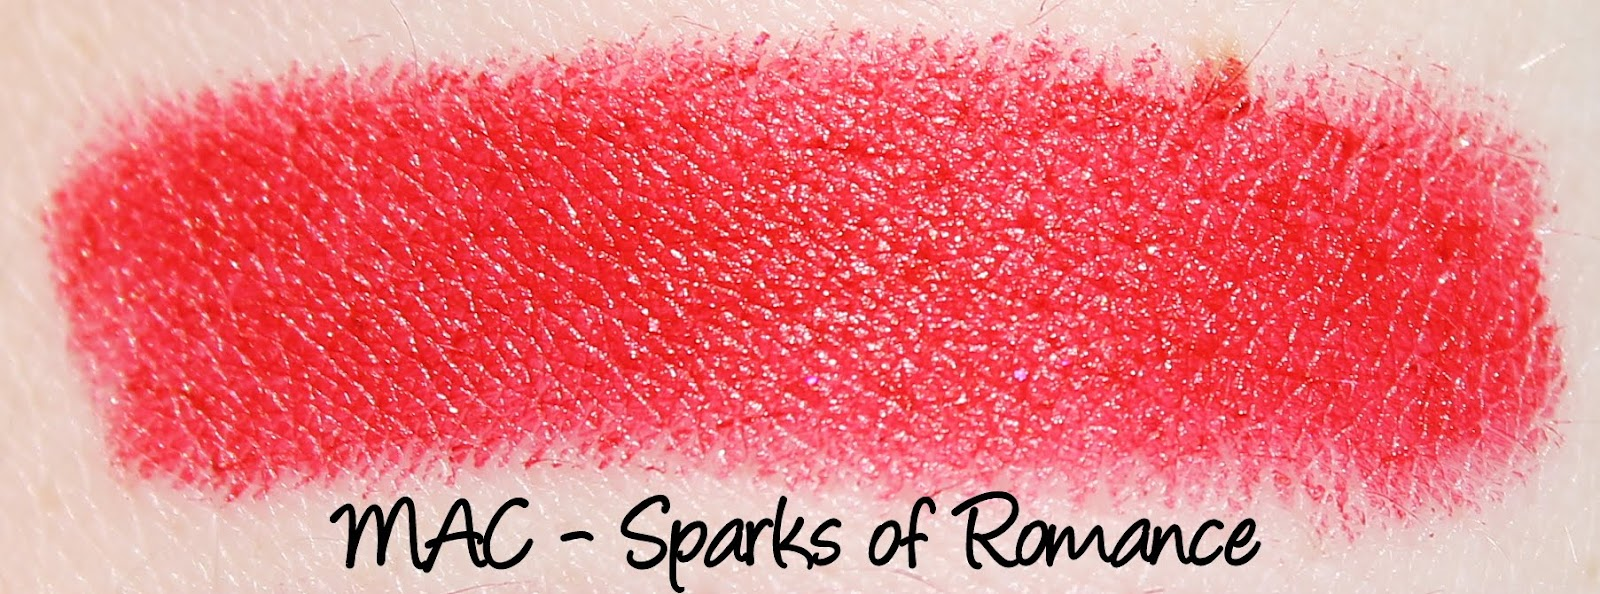 MAC Heirloom Mix Lipsticks - Sparks of Romance Swatches & Review